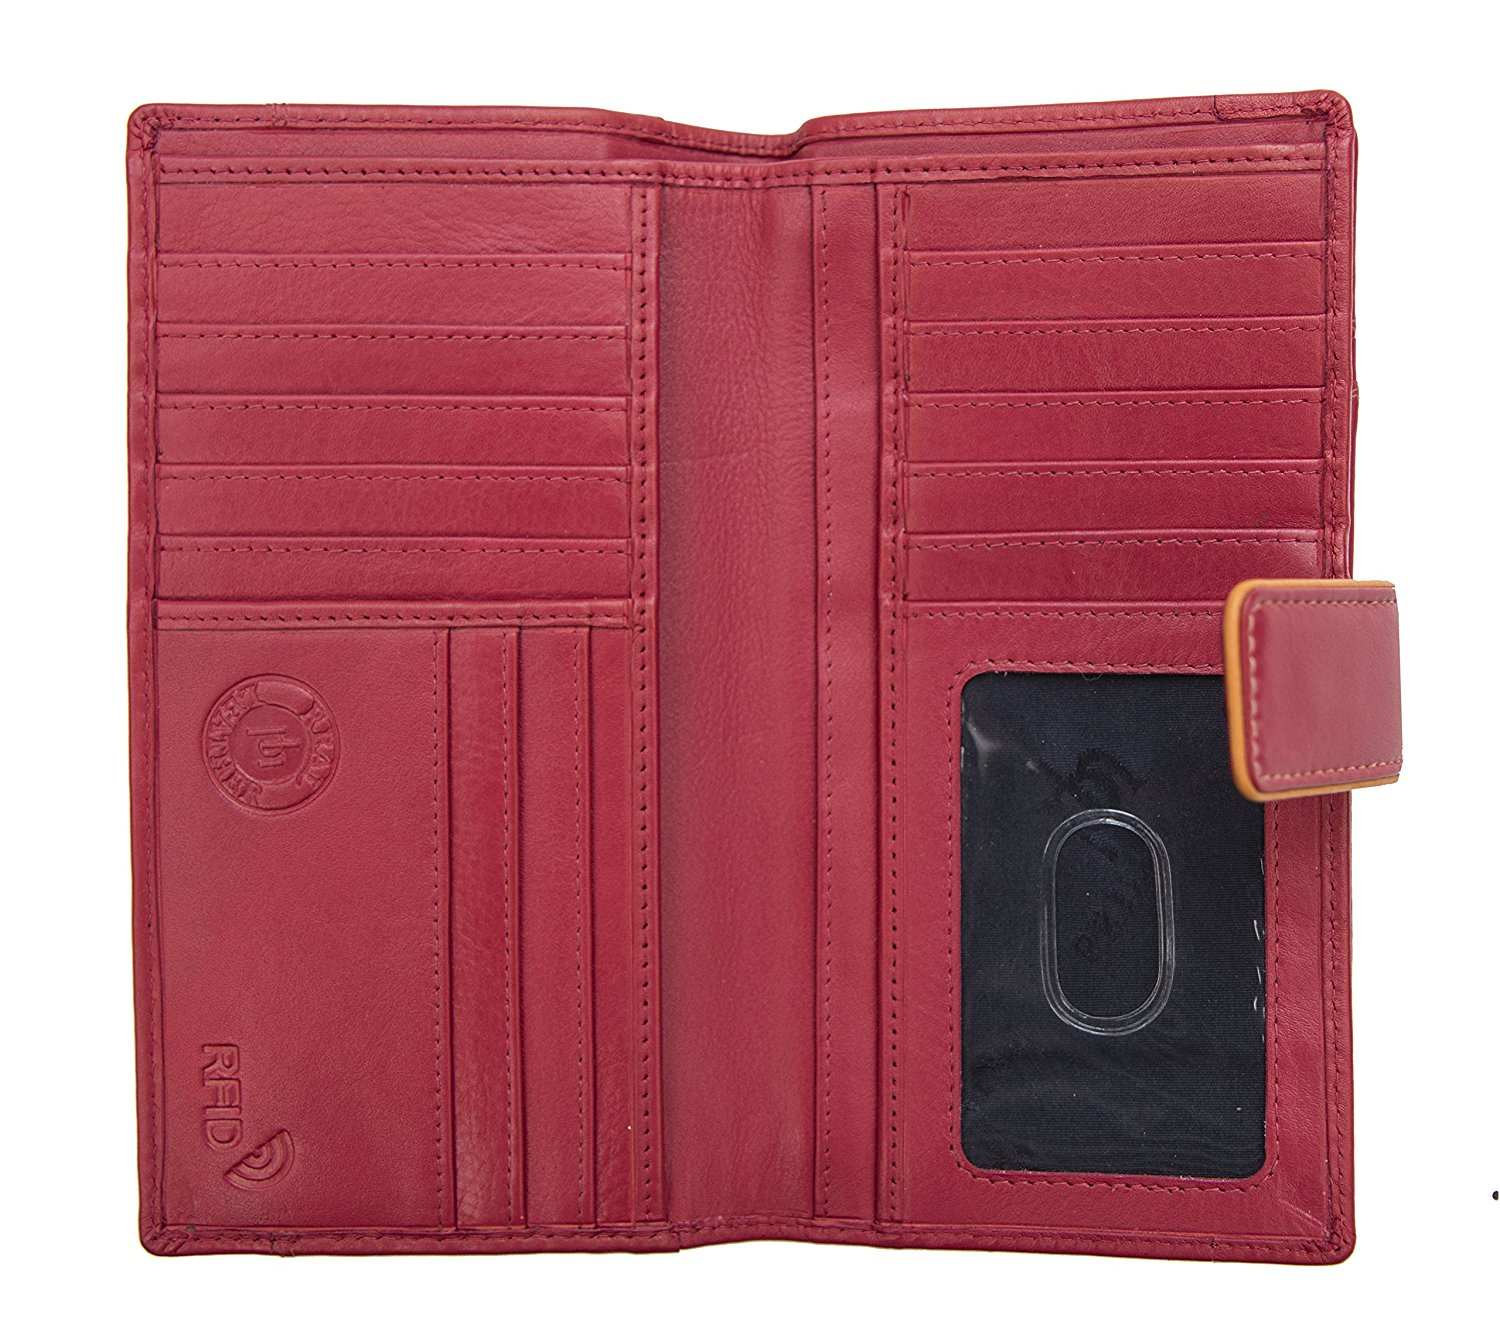 Femmes-Extra-Large-en-Cuir-Veritable-RFID-Bloquant-Organisateur-Clutch-Wallet-purse miniature 21